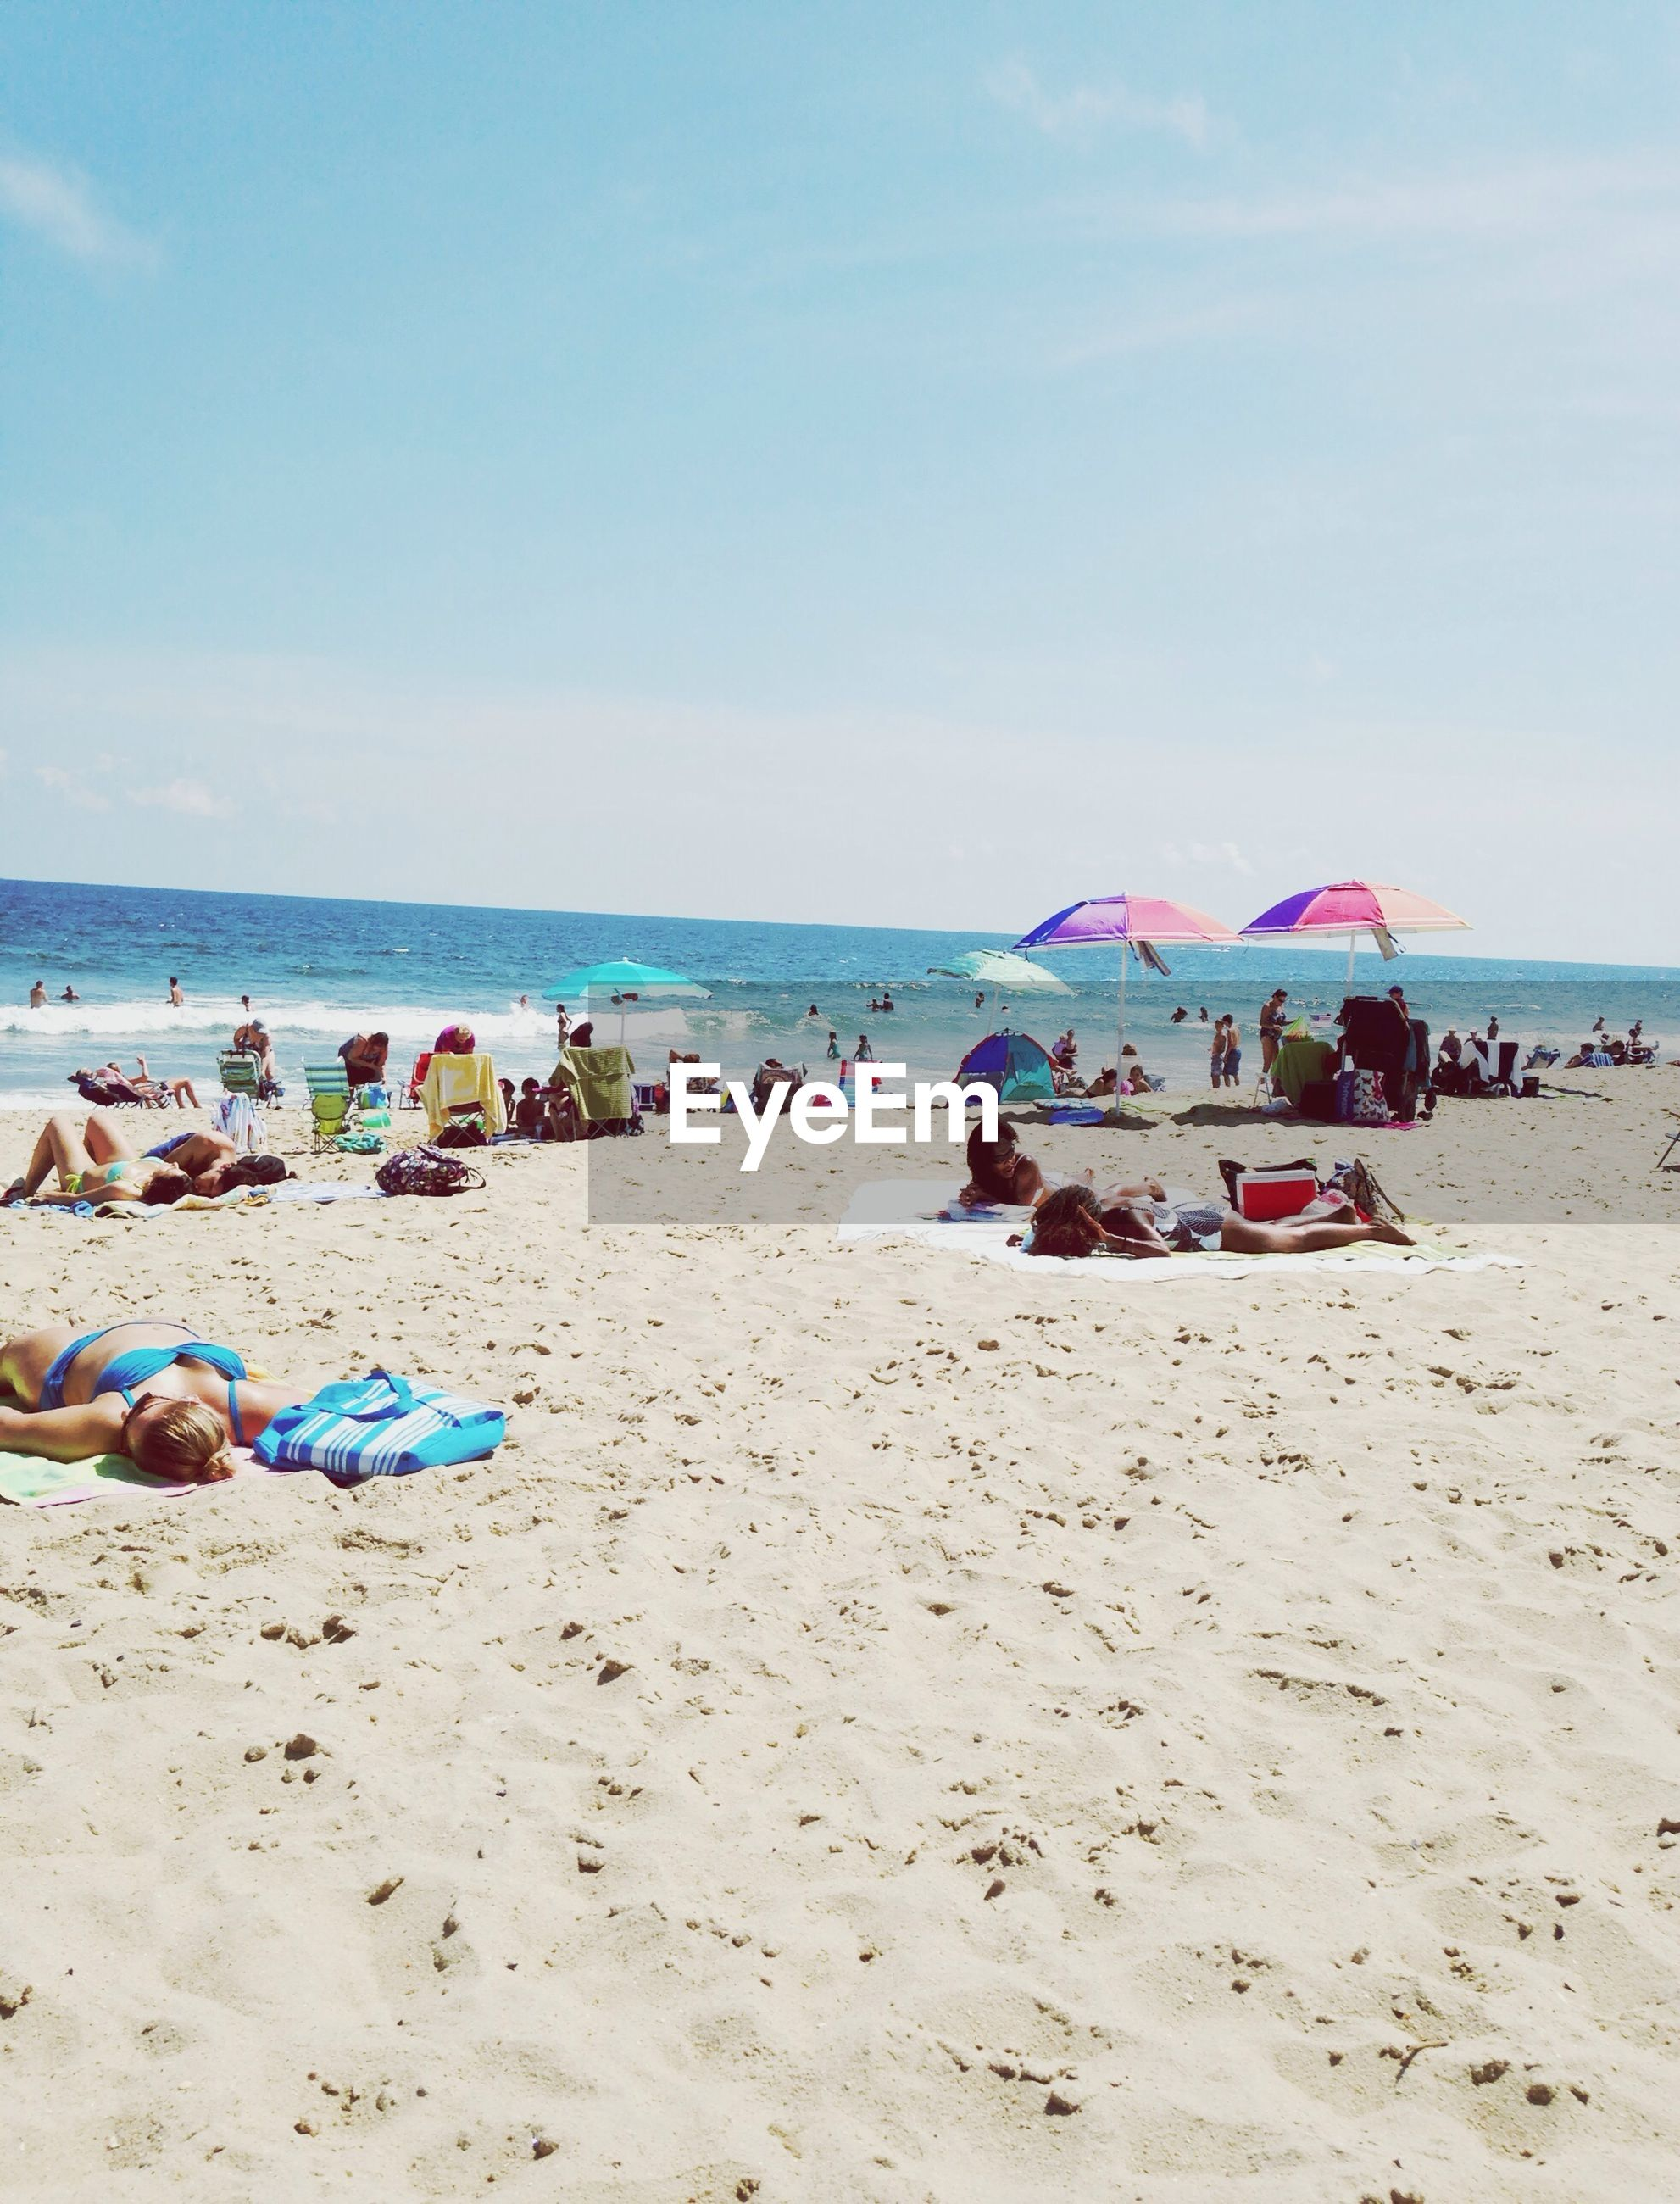 beach, sea, sand, shore, water, horizon over water, vacations, large group of people, sky, beach umbrella, summer, leisure activity, tranquility, scenics, relaxation, tranquil scene, nautical vessel, parasol, nature